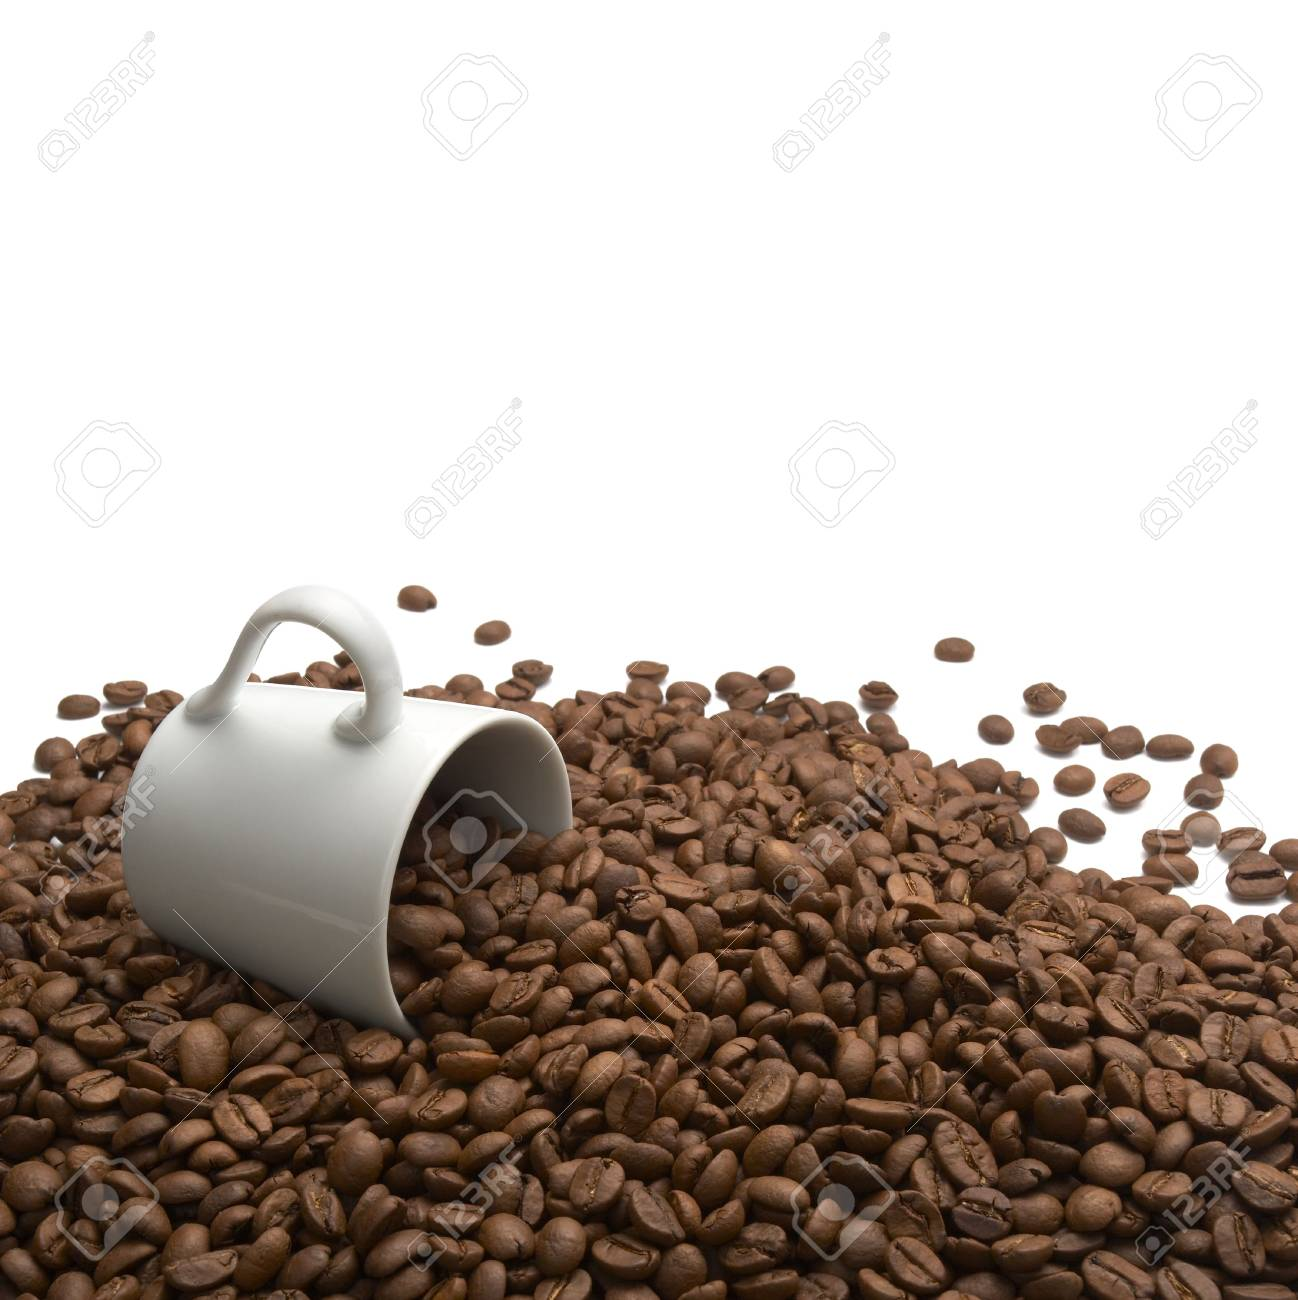 close up of coffee beans and coffee cup on white background Stock Photo - 4983577